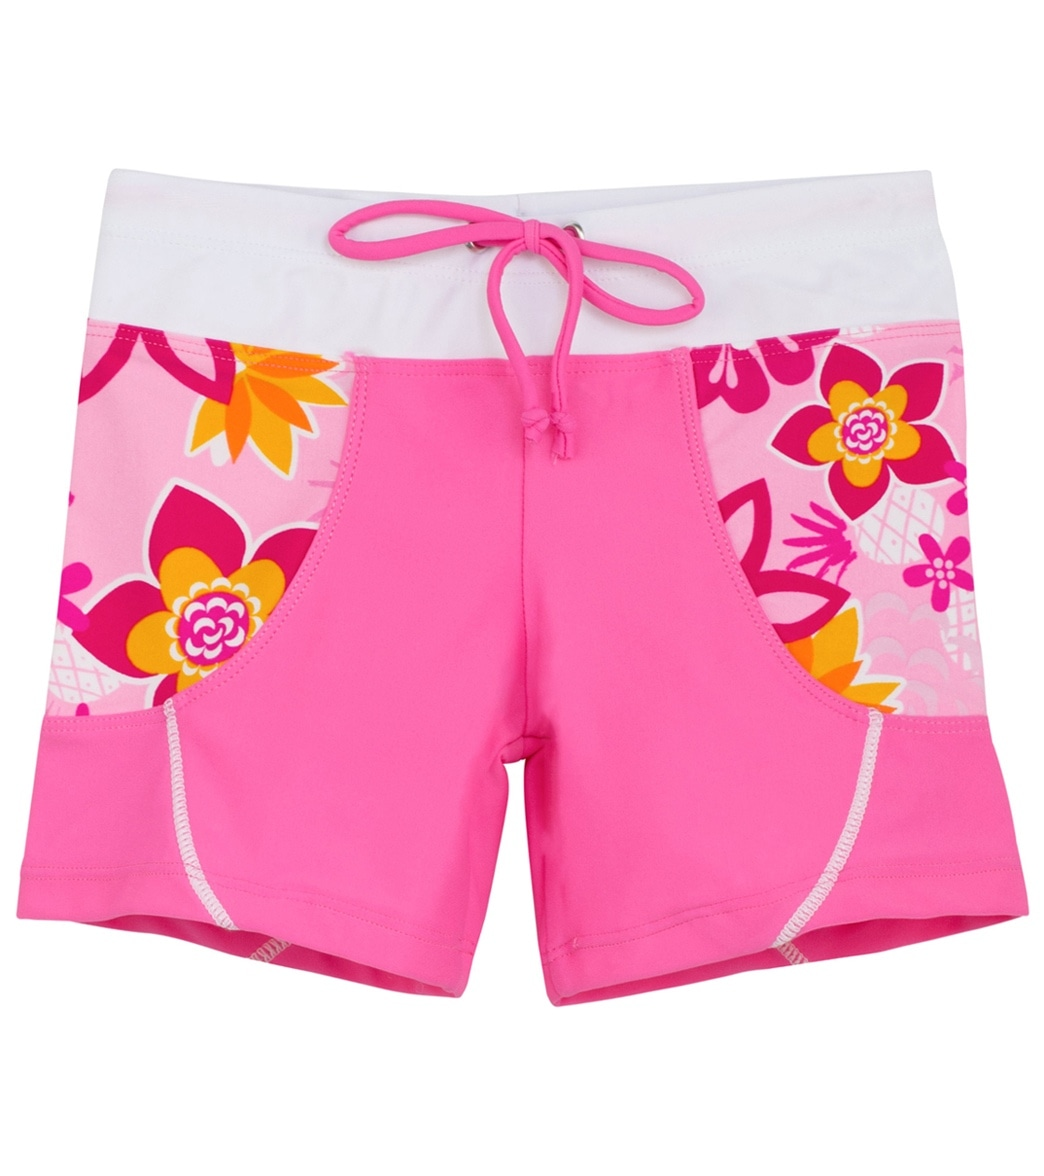 0175914069 Tuga Girls' Tropical Punch Shorts (Toddler, Little Kid, Big Kid) at  SwimOutlet.com